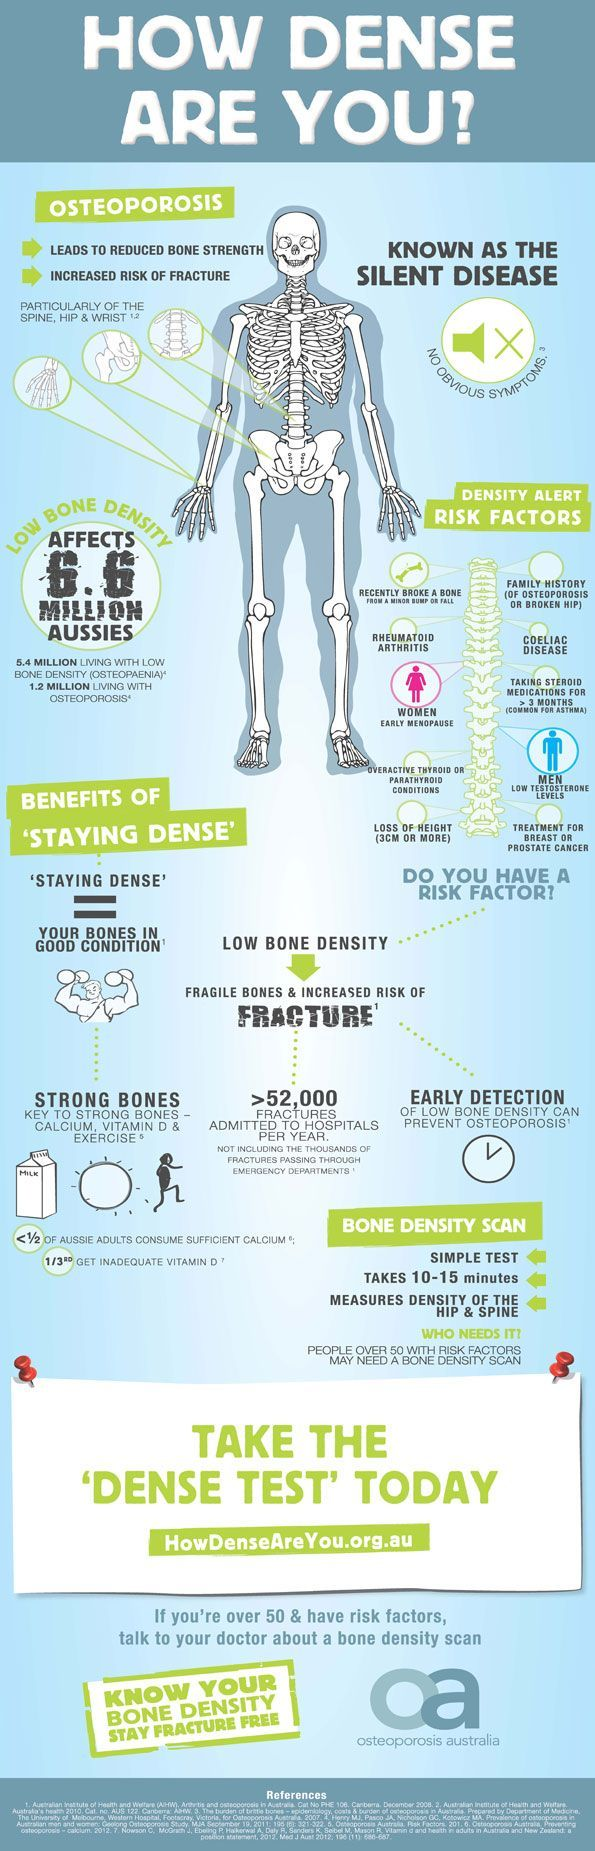 affects of osteoporosis osteoarthritis and muscular Osteoporosis and aging muscle weakness associated with aging osteoarthritis   changes in the muscles, joints, and bones affect the posture and walk, and  lead to  osteoarthritis is a chronic disease of the joint cartilage and bone, often .